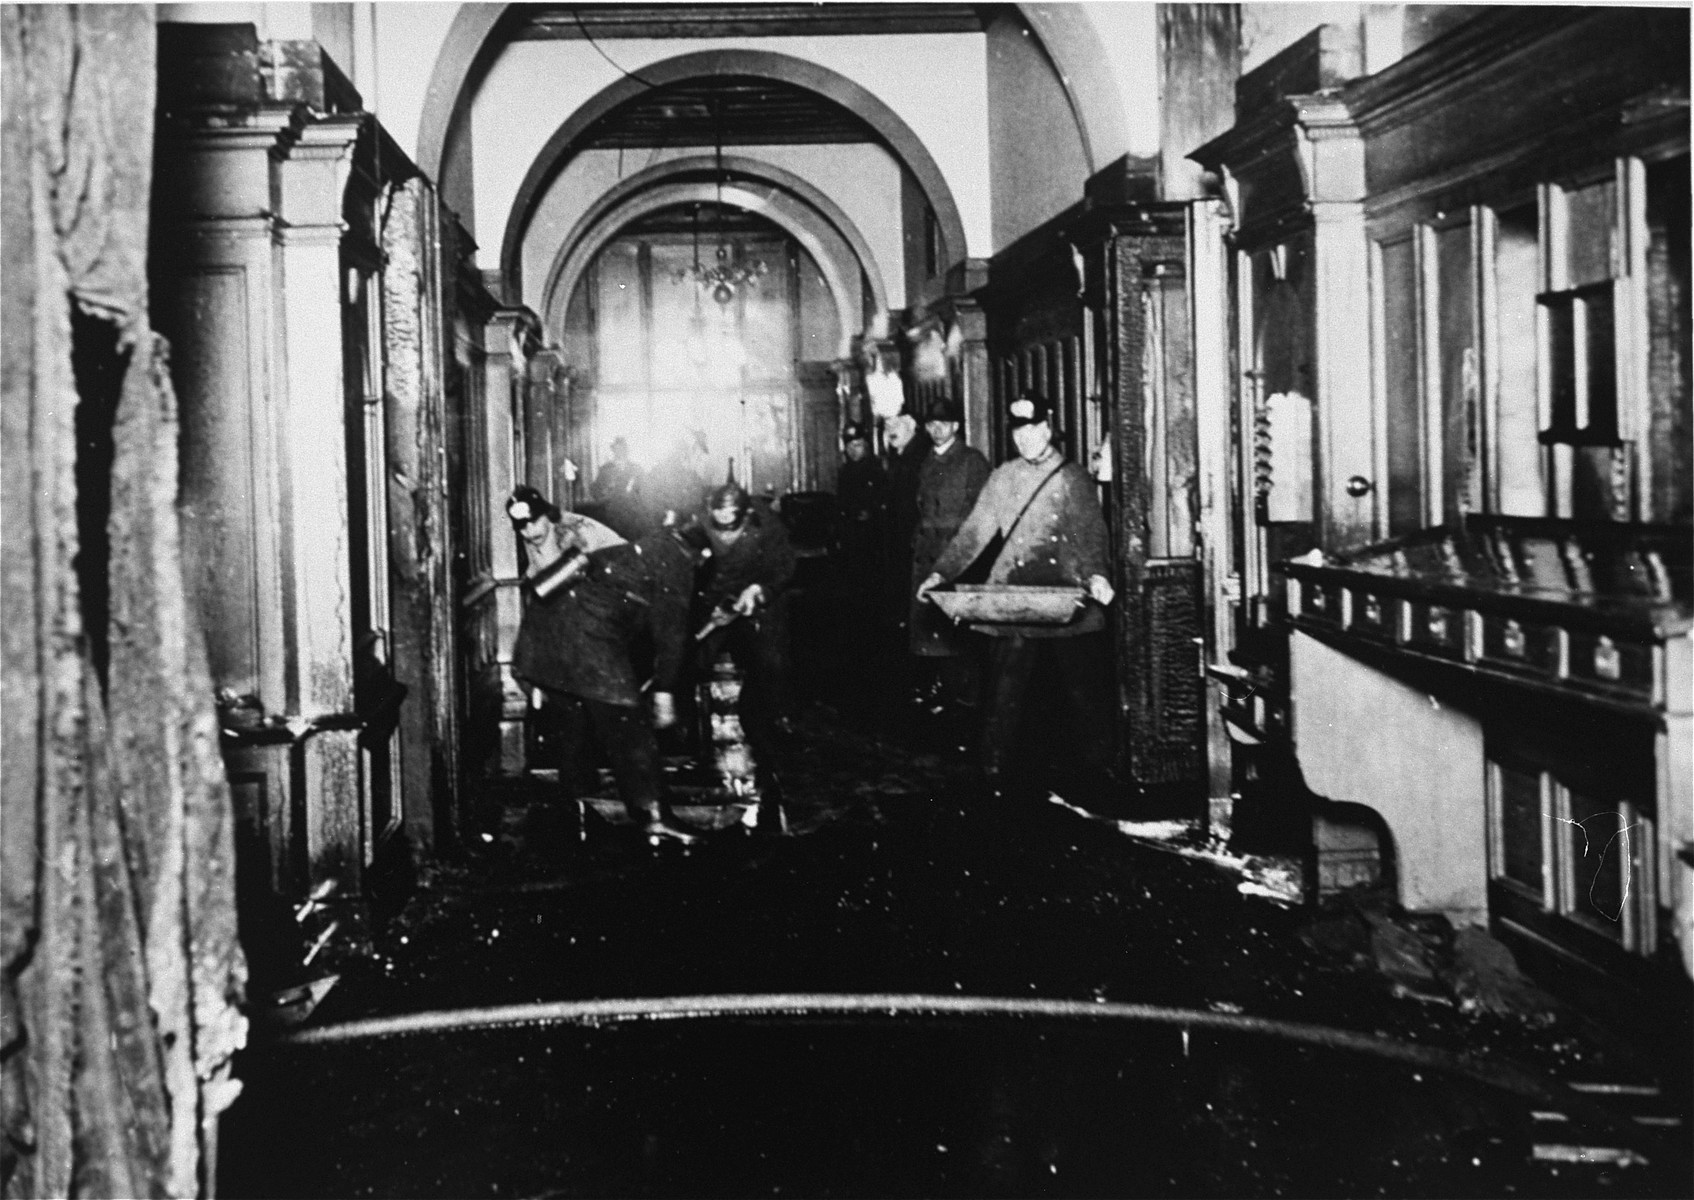 Firefighters at work inside the Reichstag building during the fire.